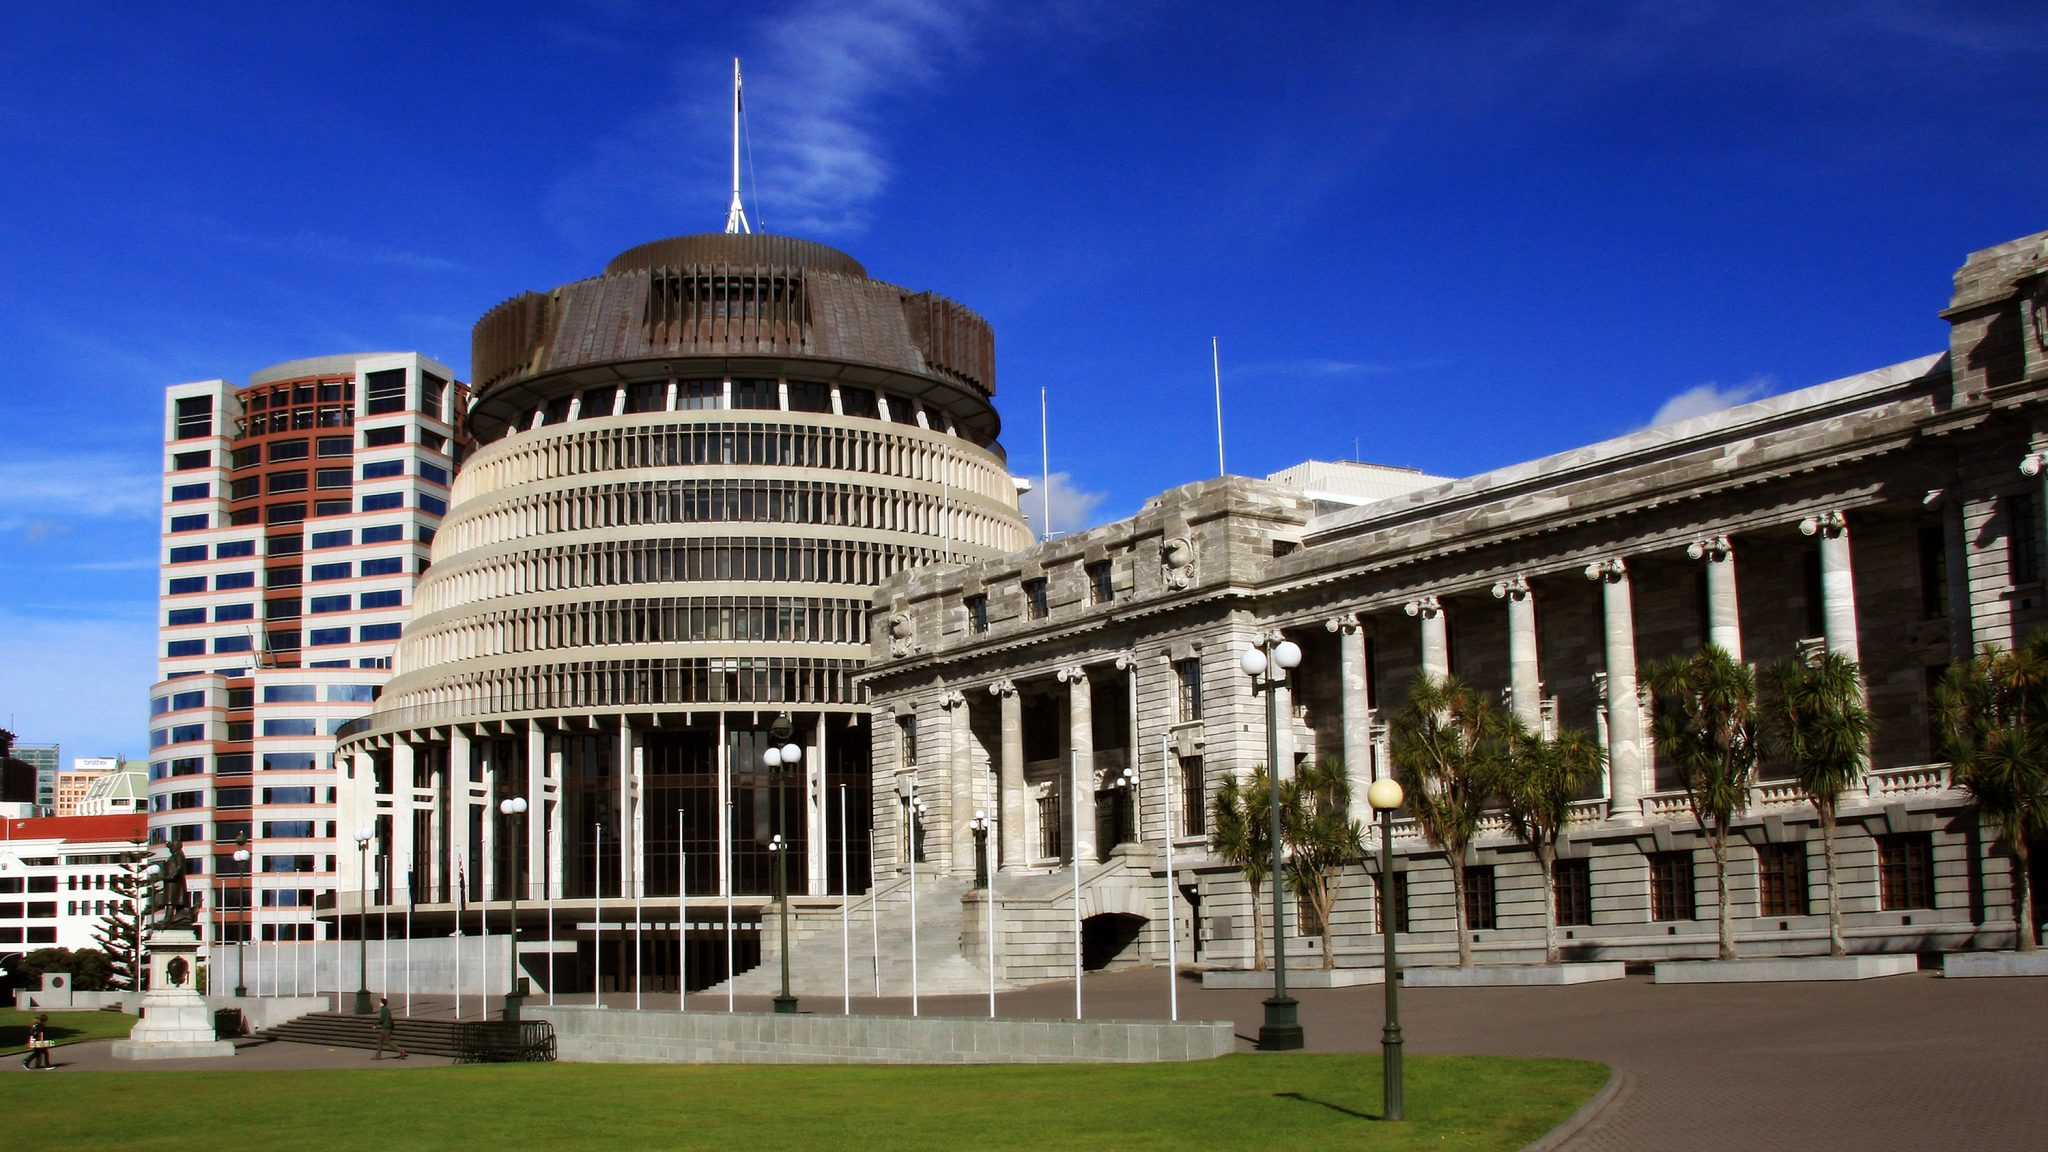 New Zealand government bias against Israel